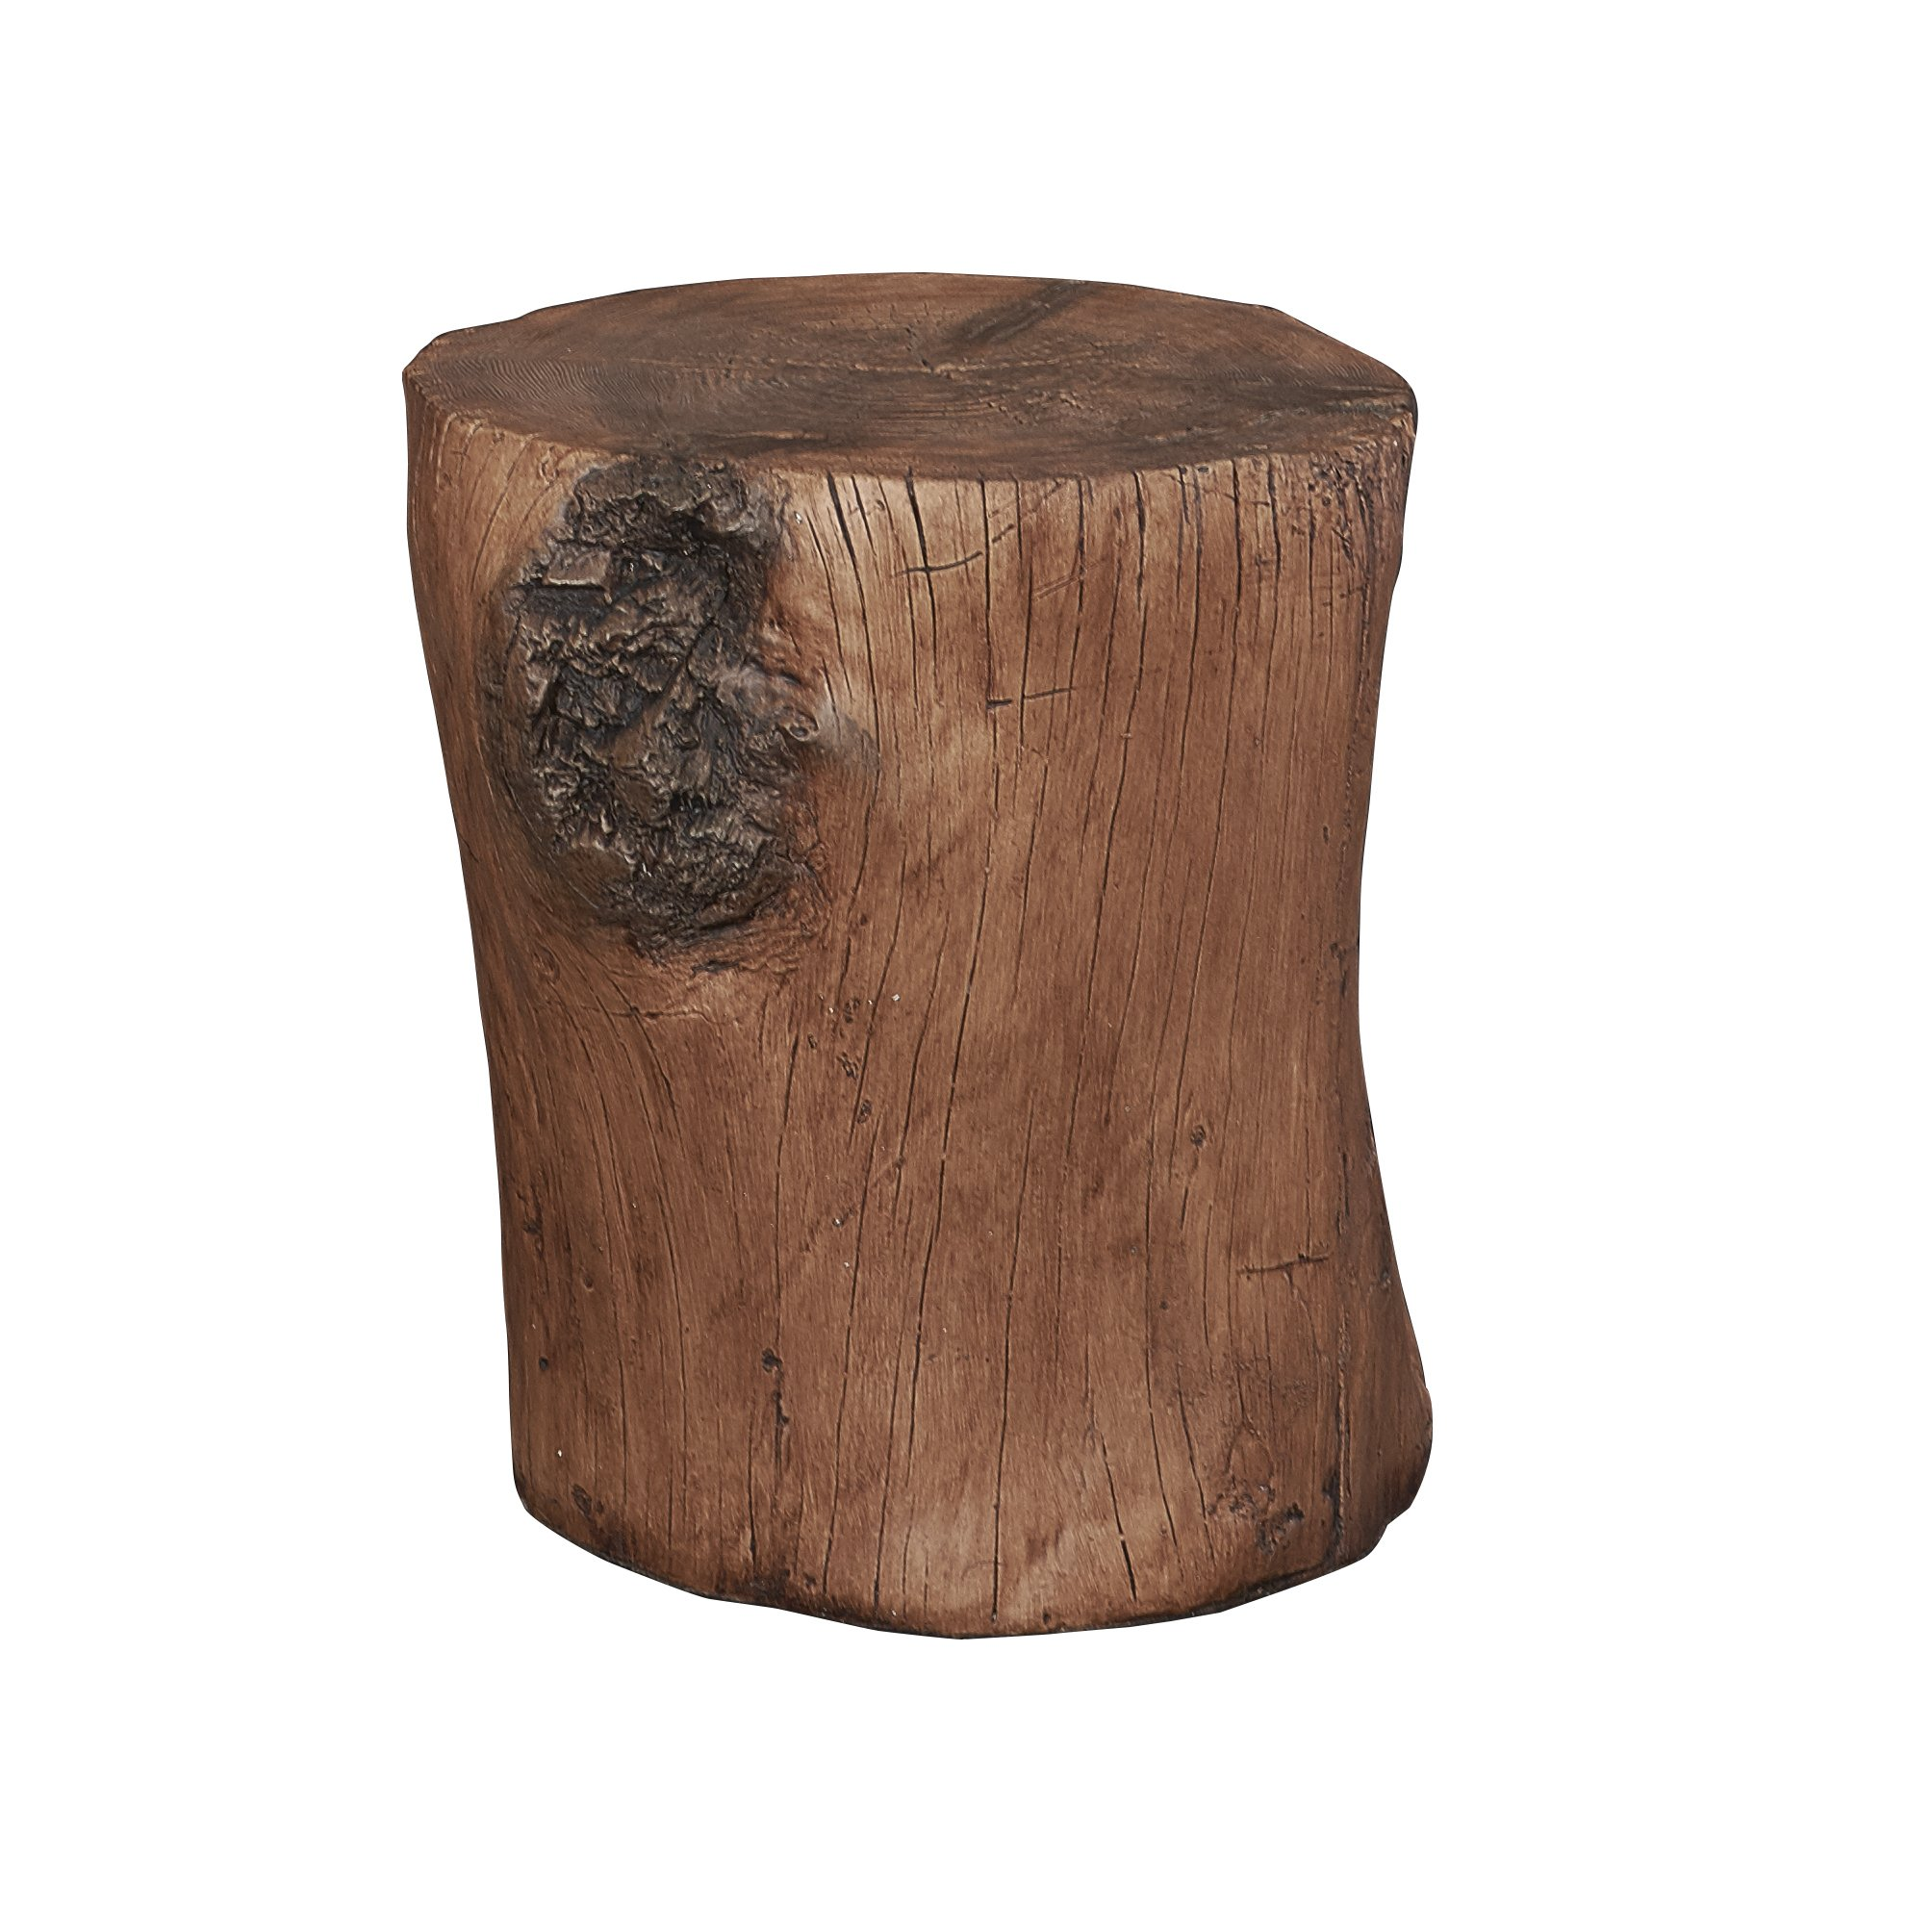 hunter tree stump accent table free shipping today wood multi colored coffee counter height dining chairs painted nightstands target high top battery operated touch lamps small